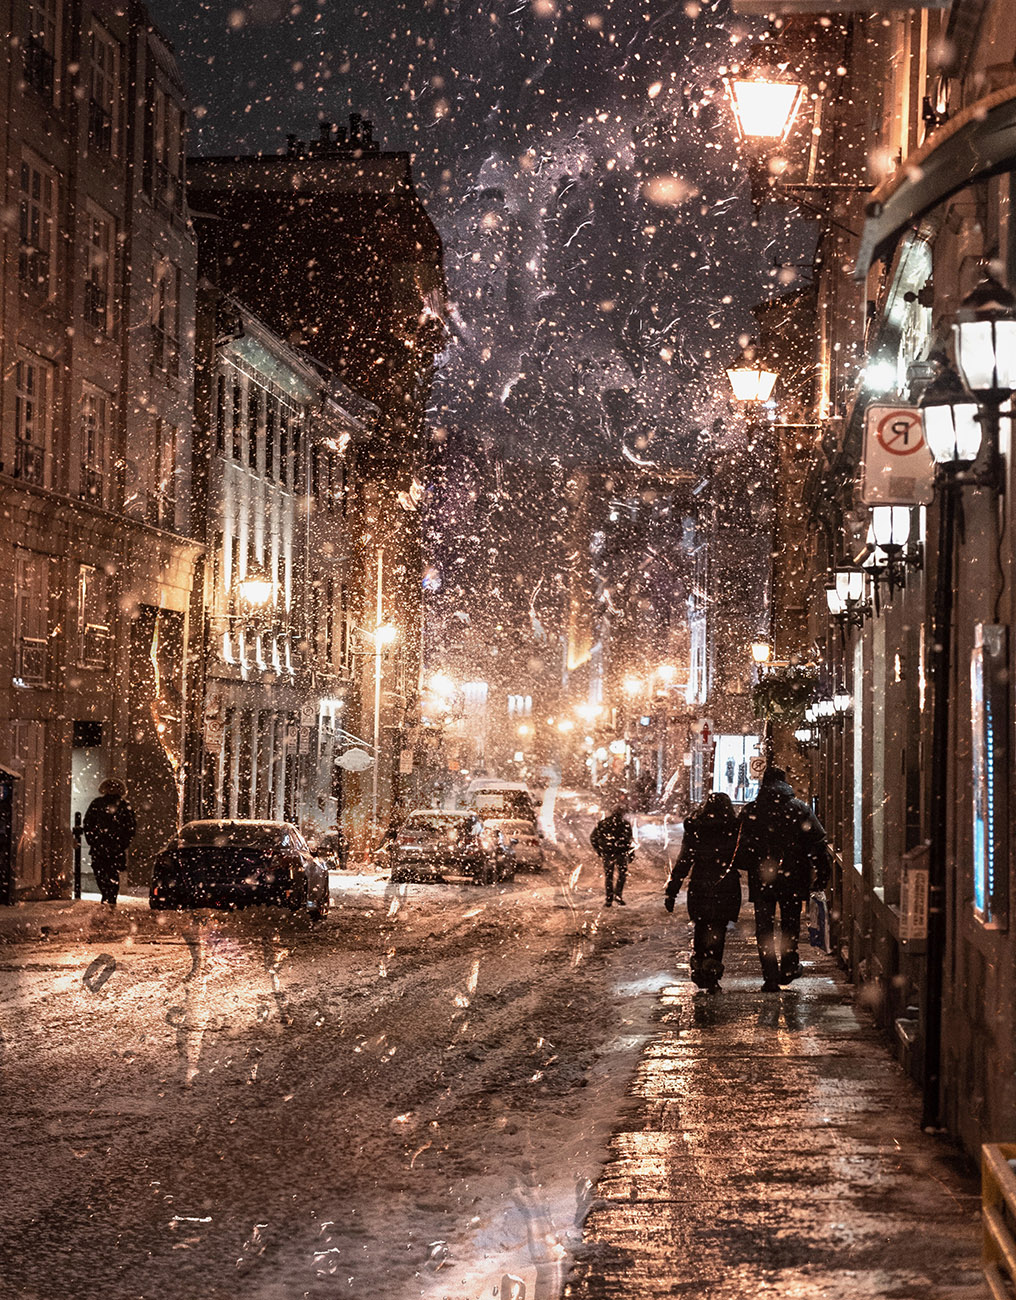 Bad Winter Weather in City Street - Royalty-Free Stock Imagery